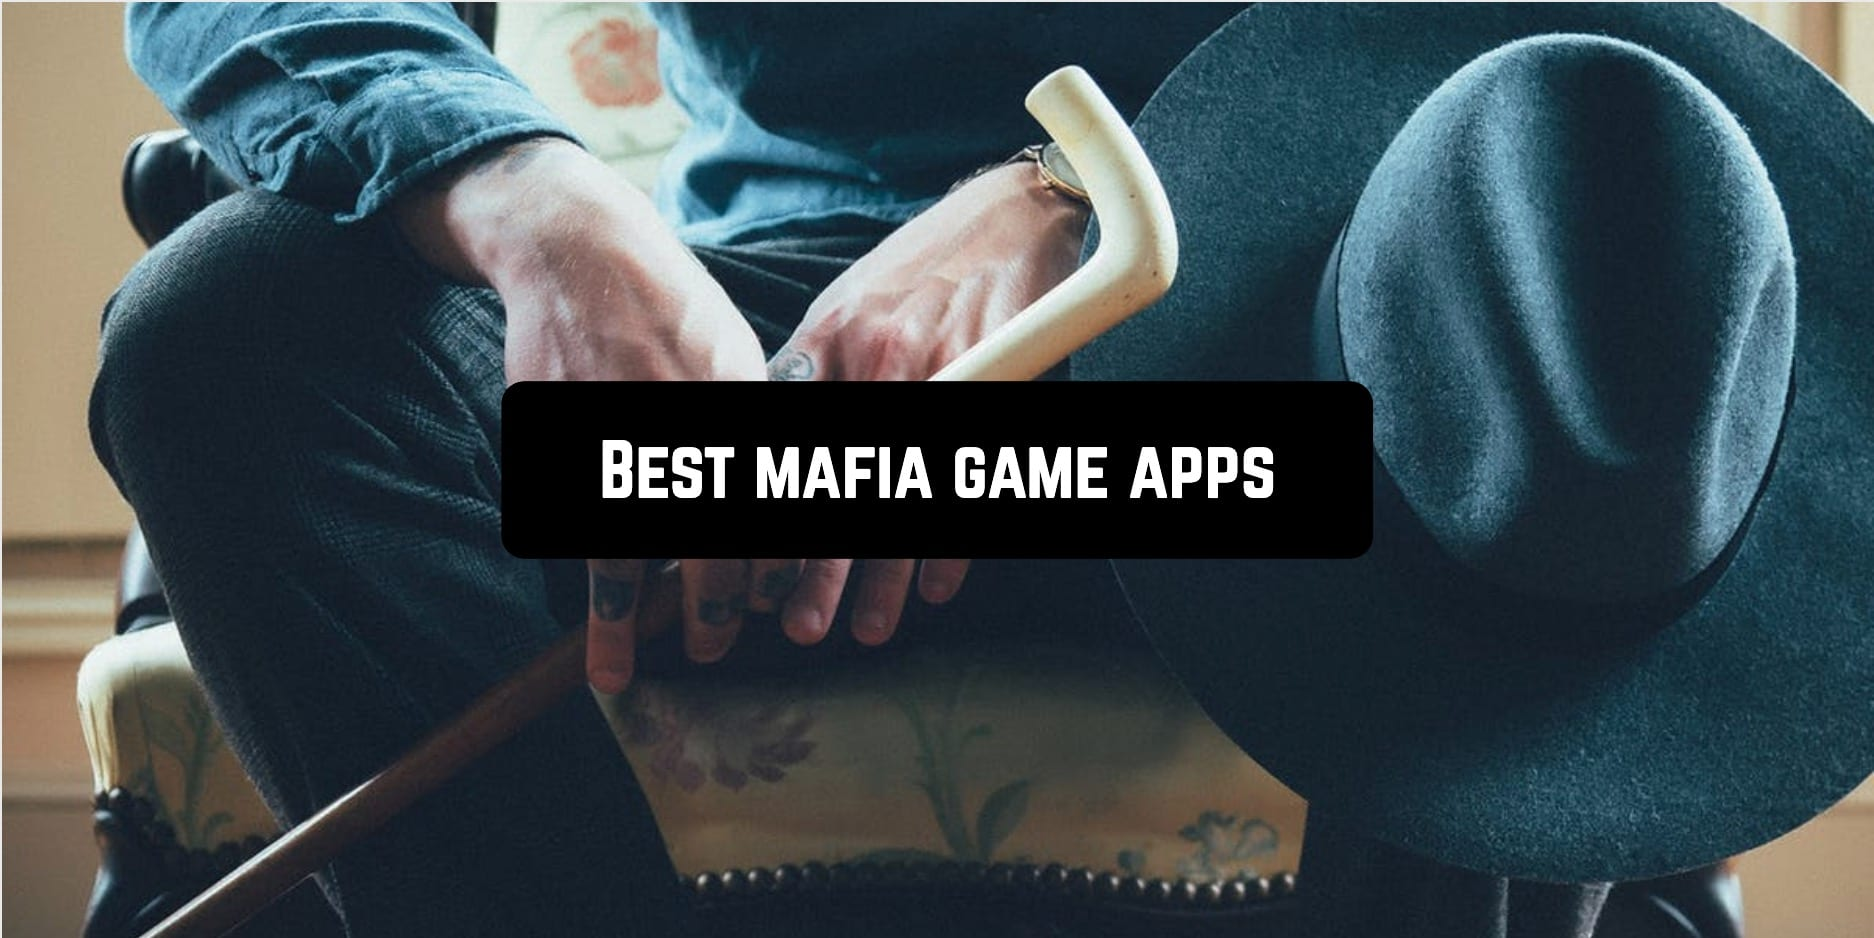 Best mafia game apps